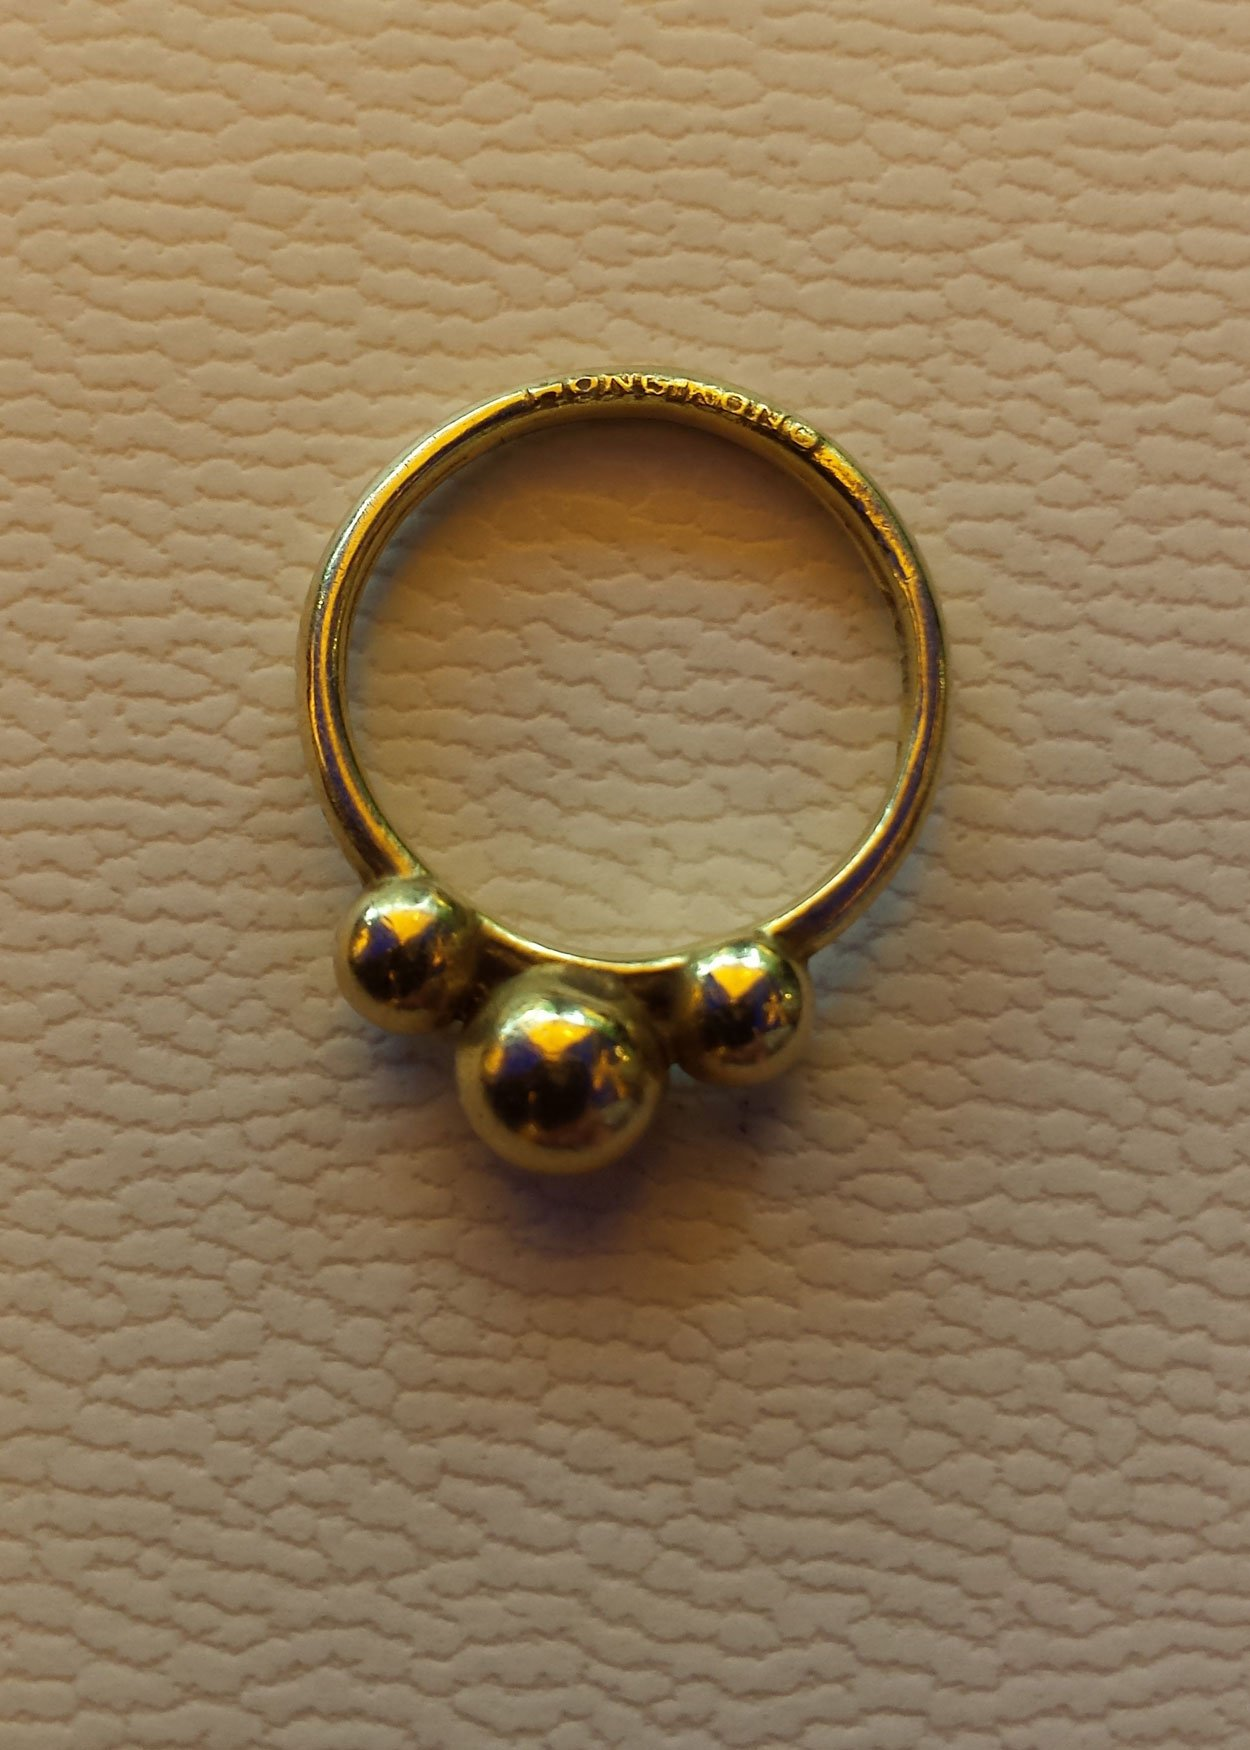 mccaul figure eight gold ring collection goldsmiths carat